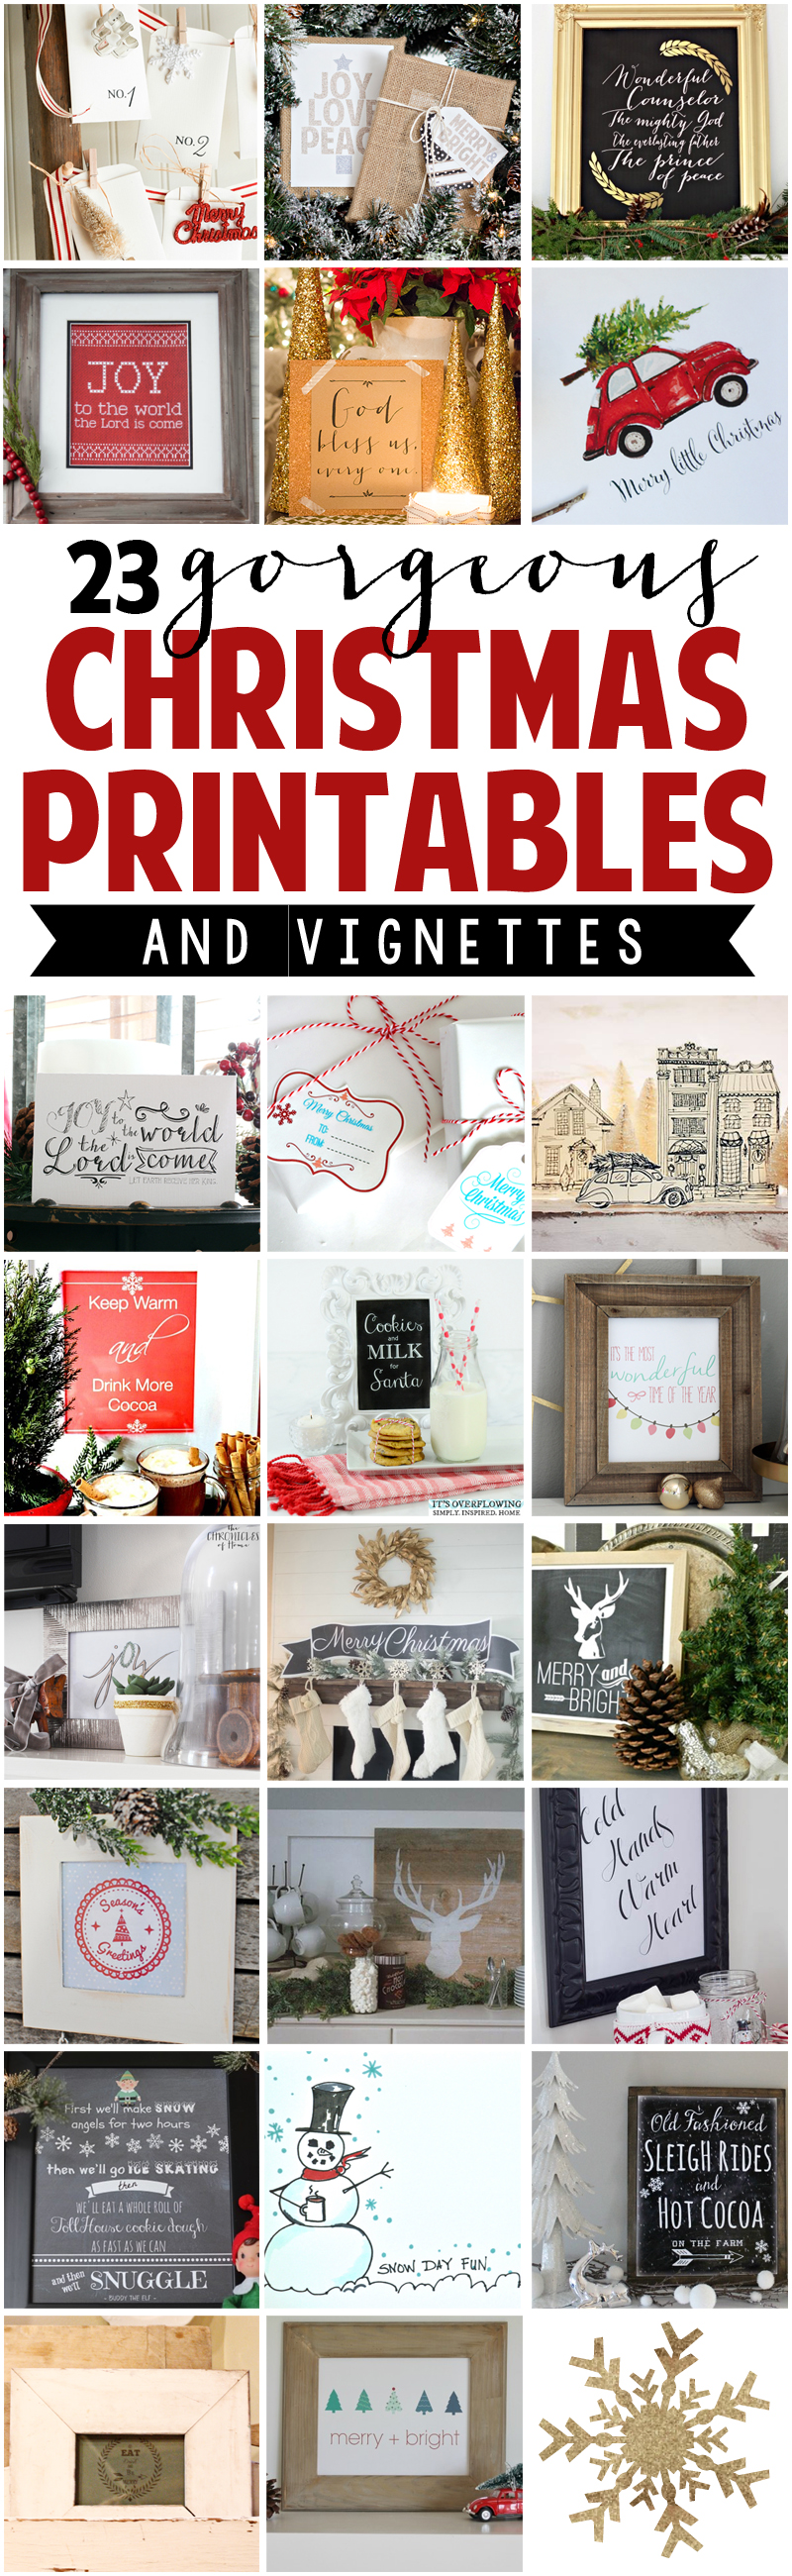 23 Gorgeous Christmas Printables with Display Ideas